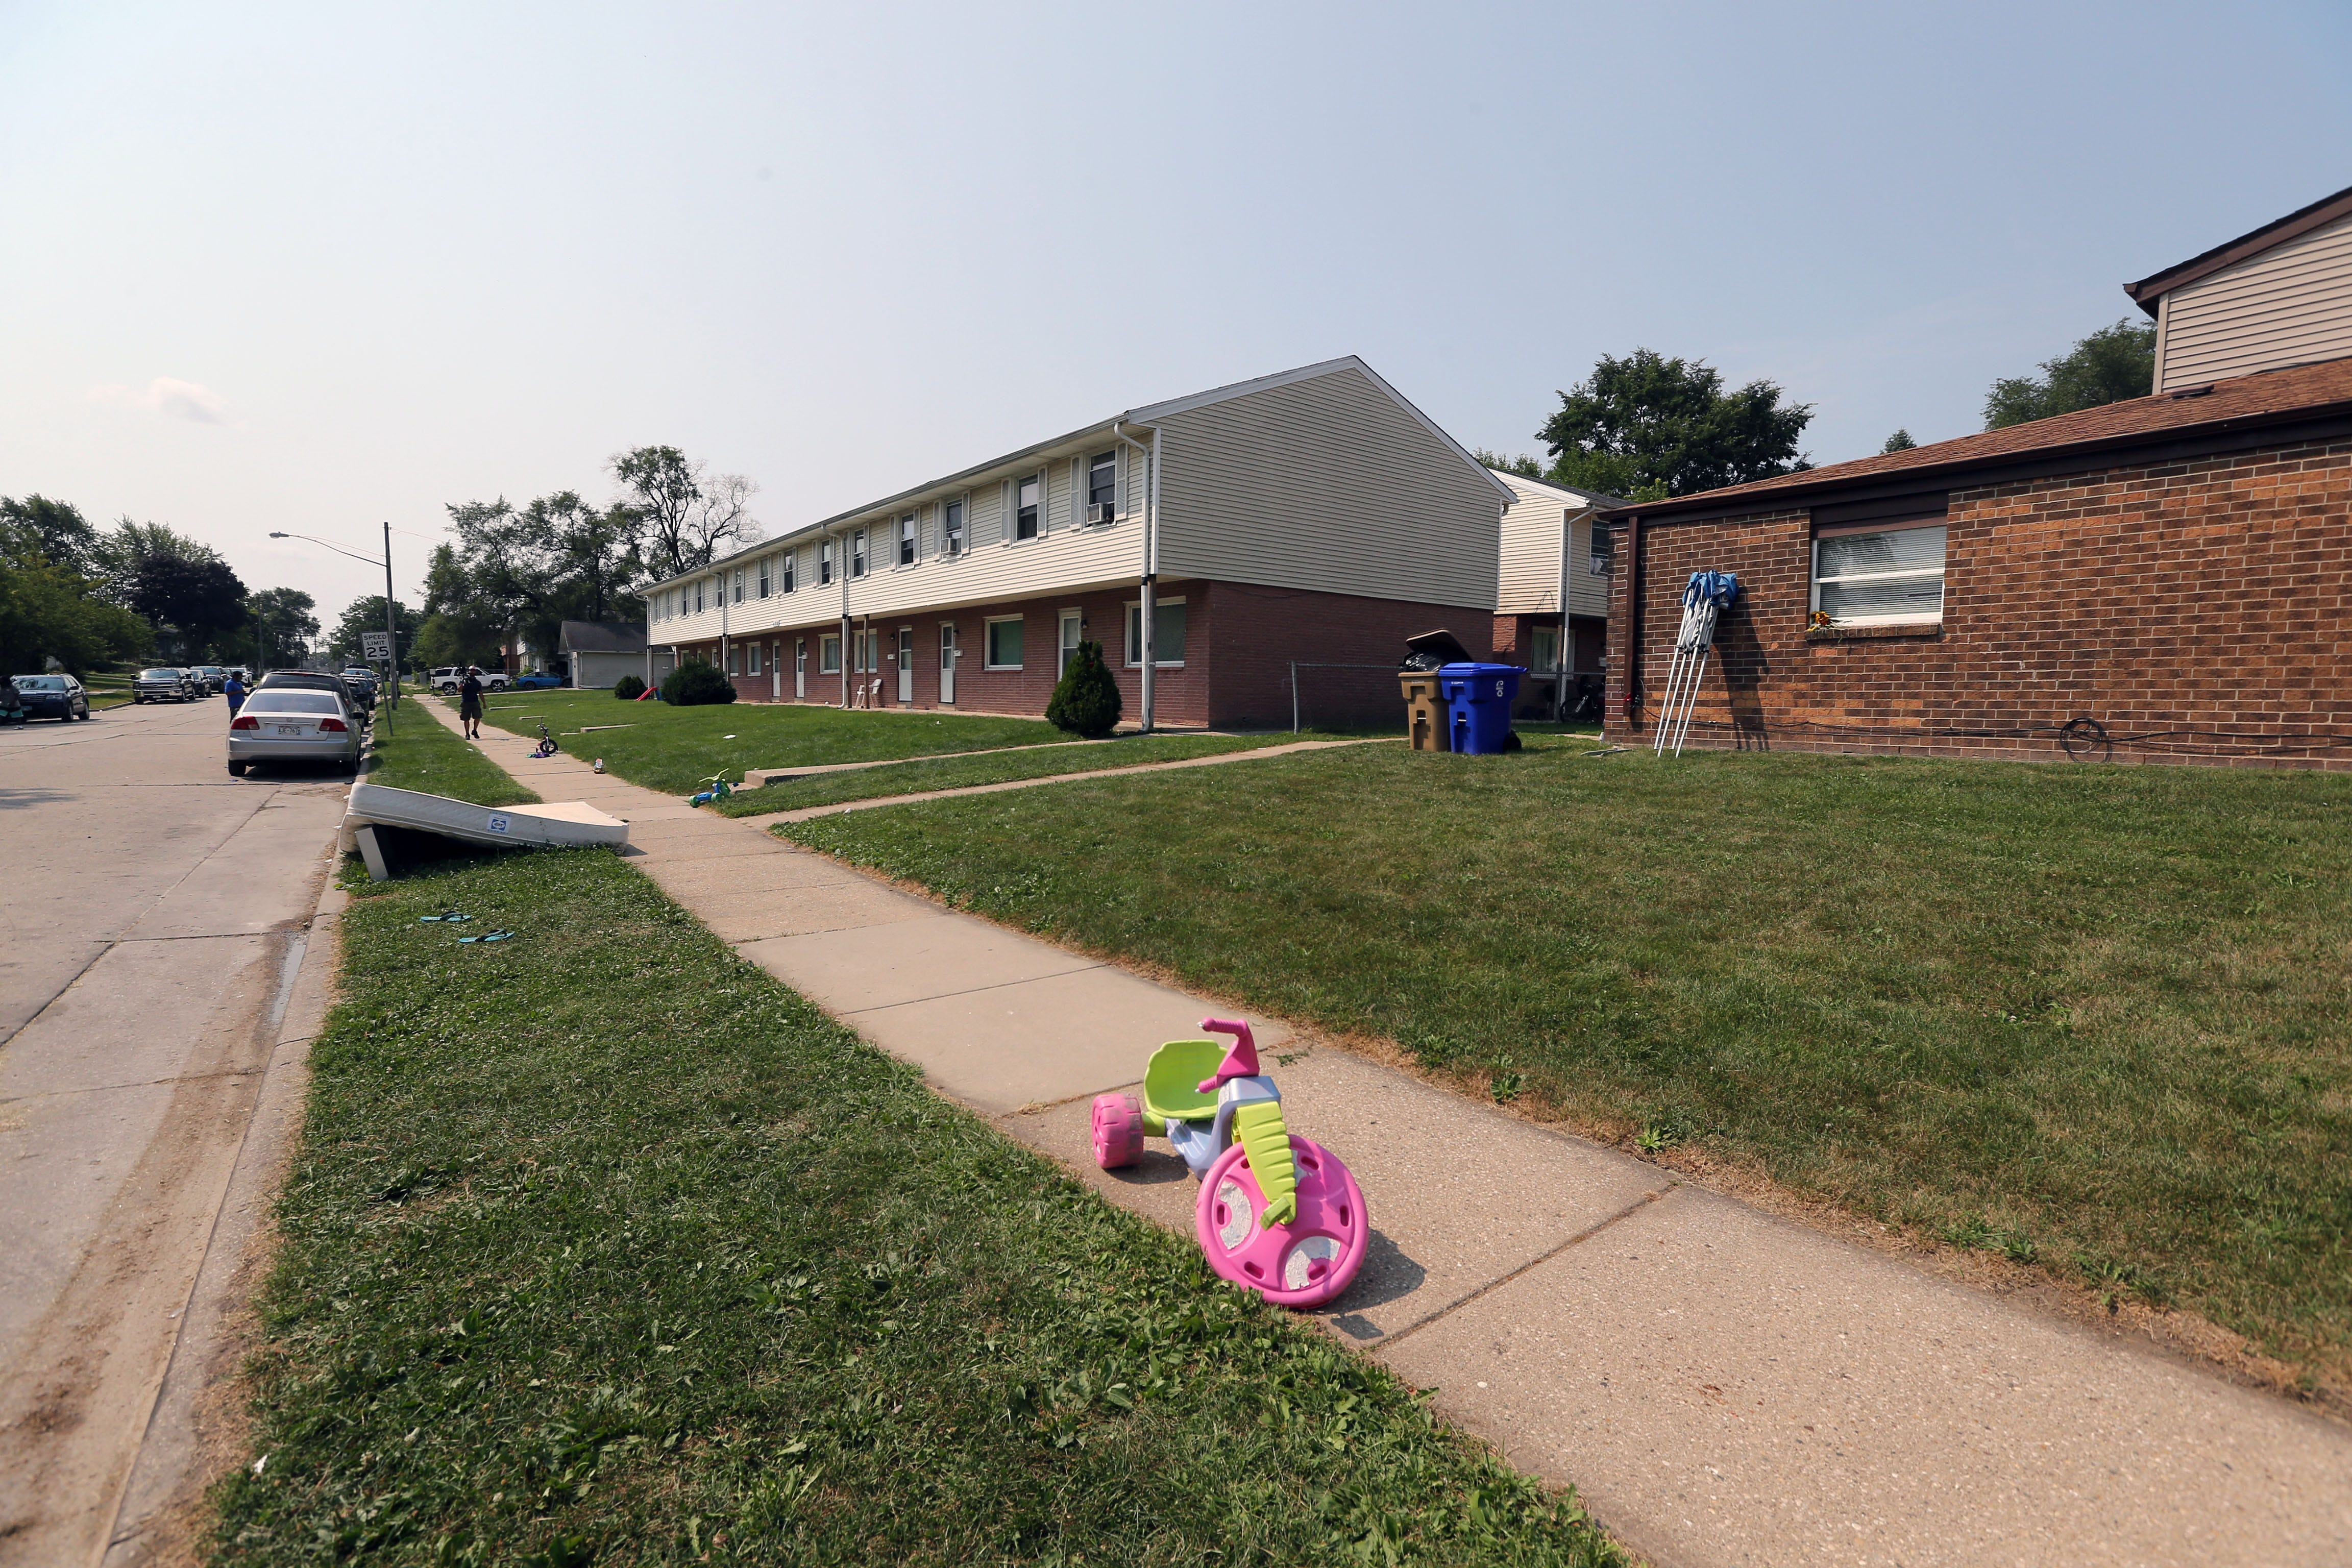 The scene near the 2800 block of 40th street where Jacob Blake was shot by a Kenosha police officer on Aug. 23, 2020.